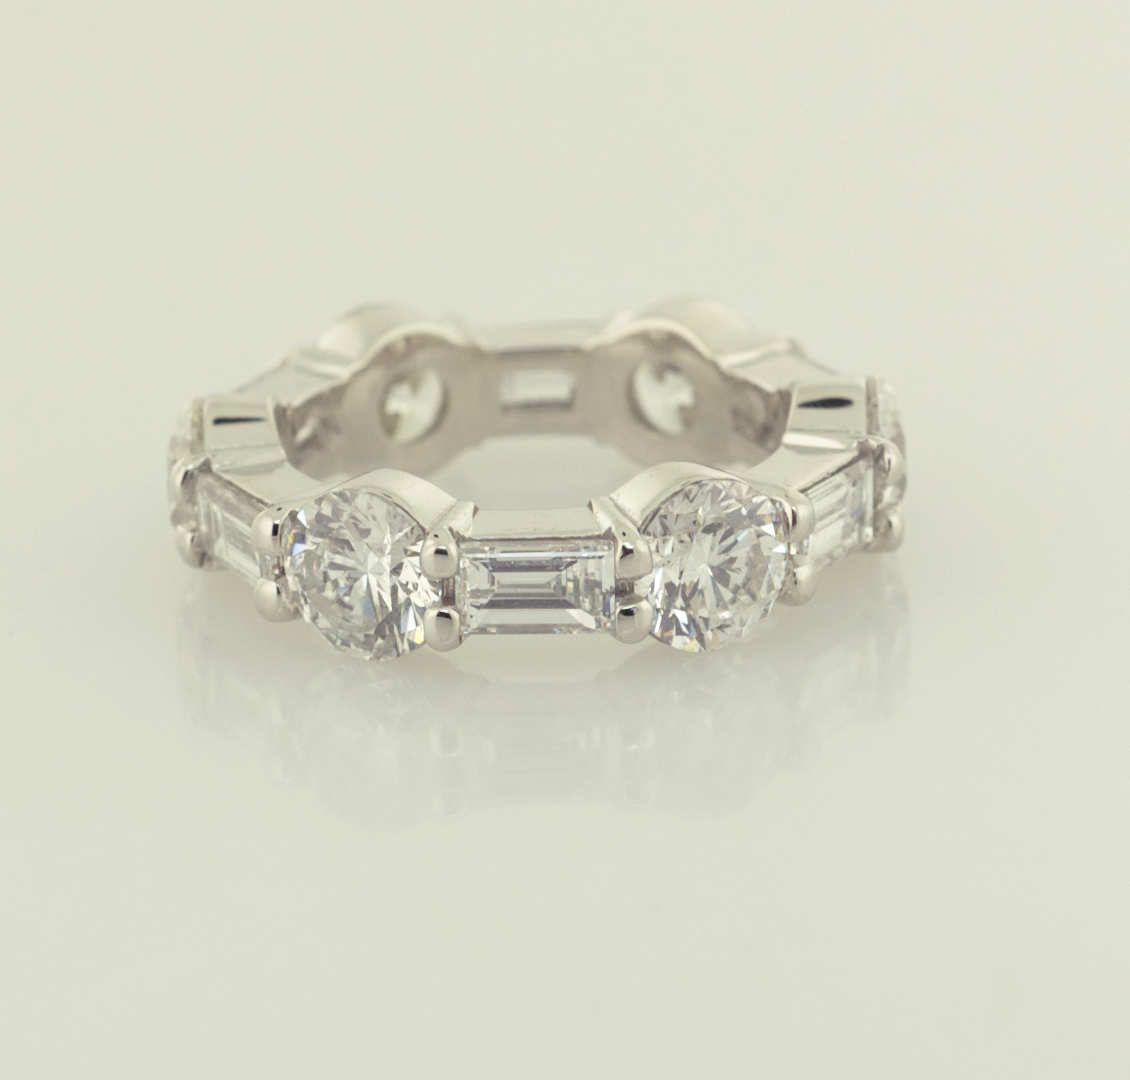 diamondernity of and size band ringplatinum ringbaguette round princess bands ring ringprincess platinum frightening design diamond full baguette image eternity